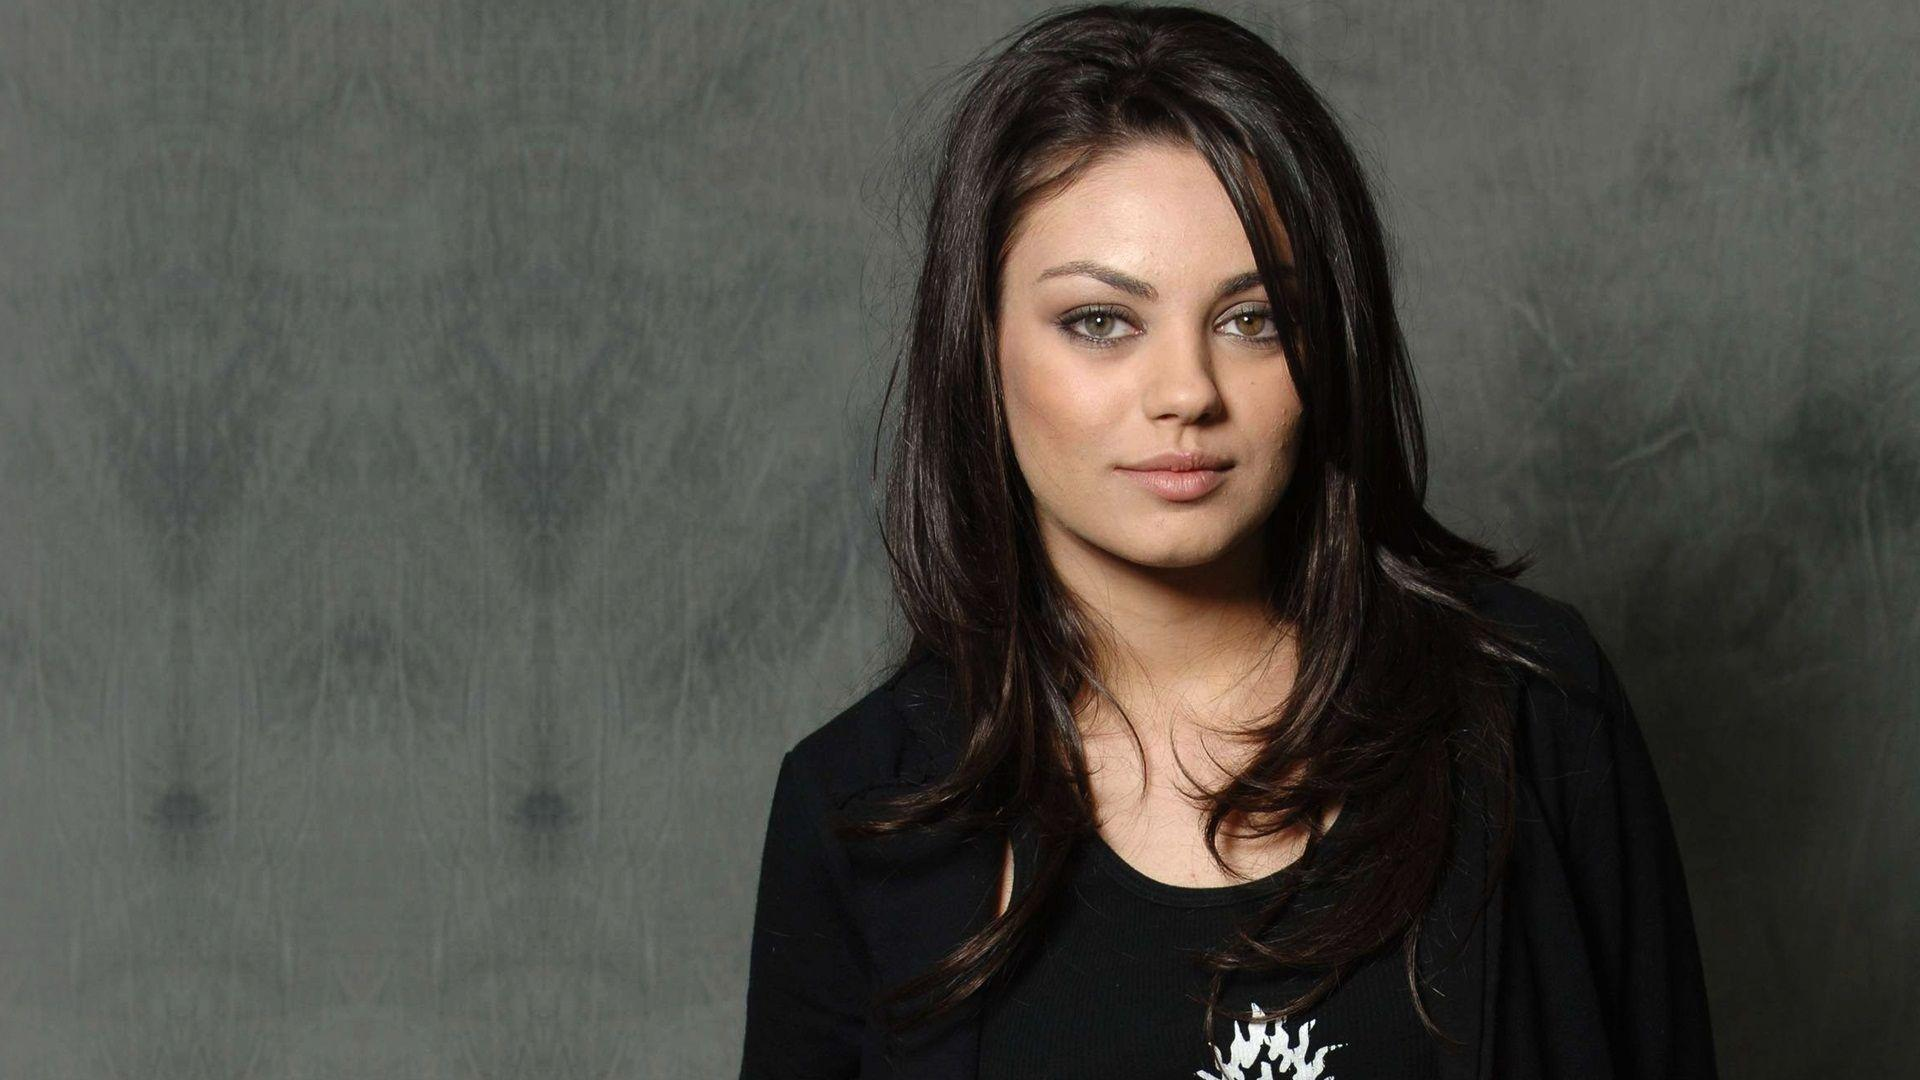 mila kunis wallpapers hd - wallpaper cave